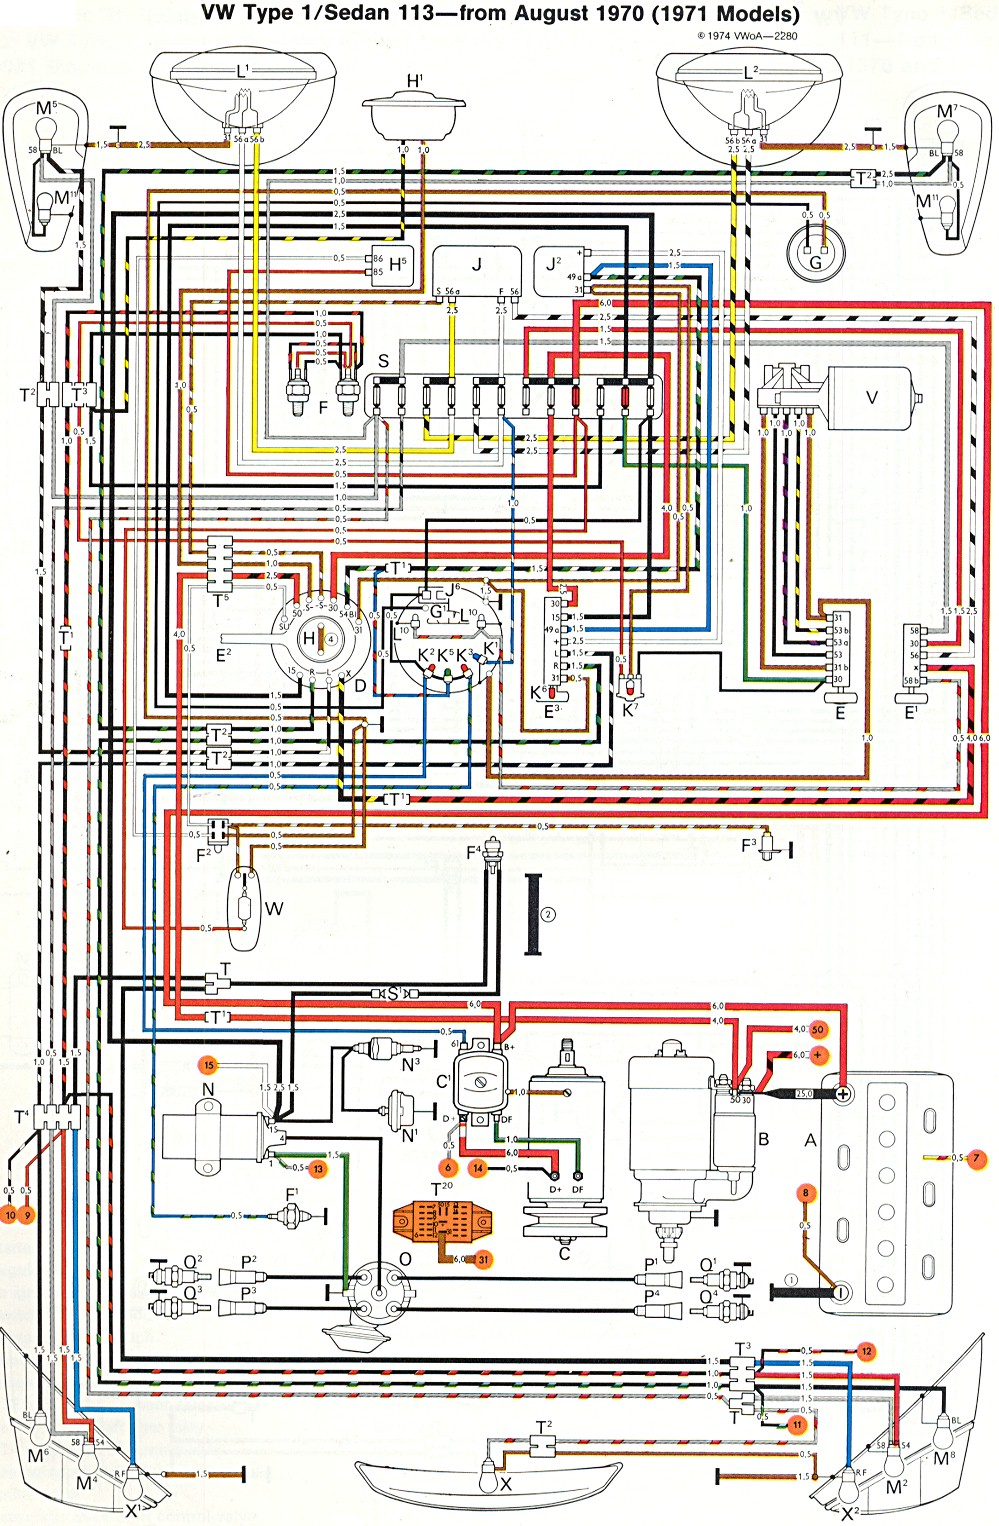 vw super beetle wiring diagram 1972 vw super beetle wiring diagram